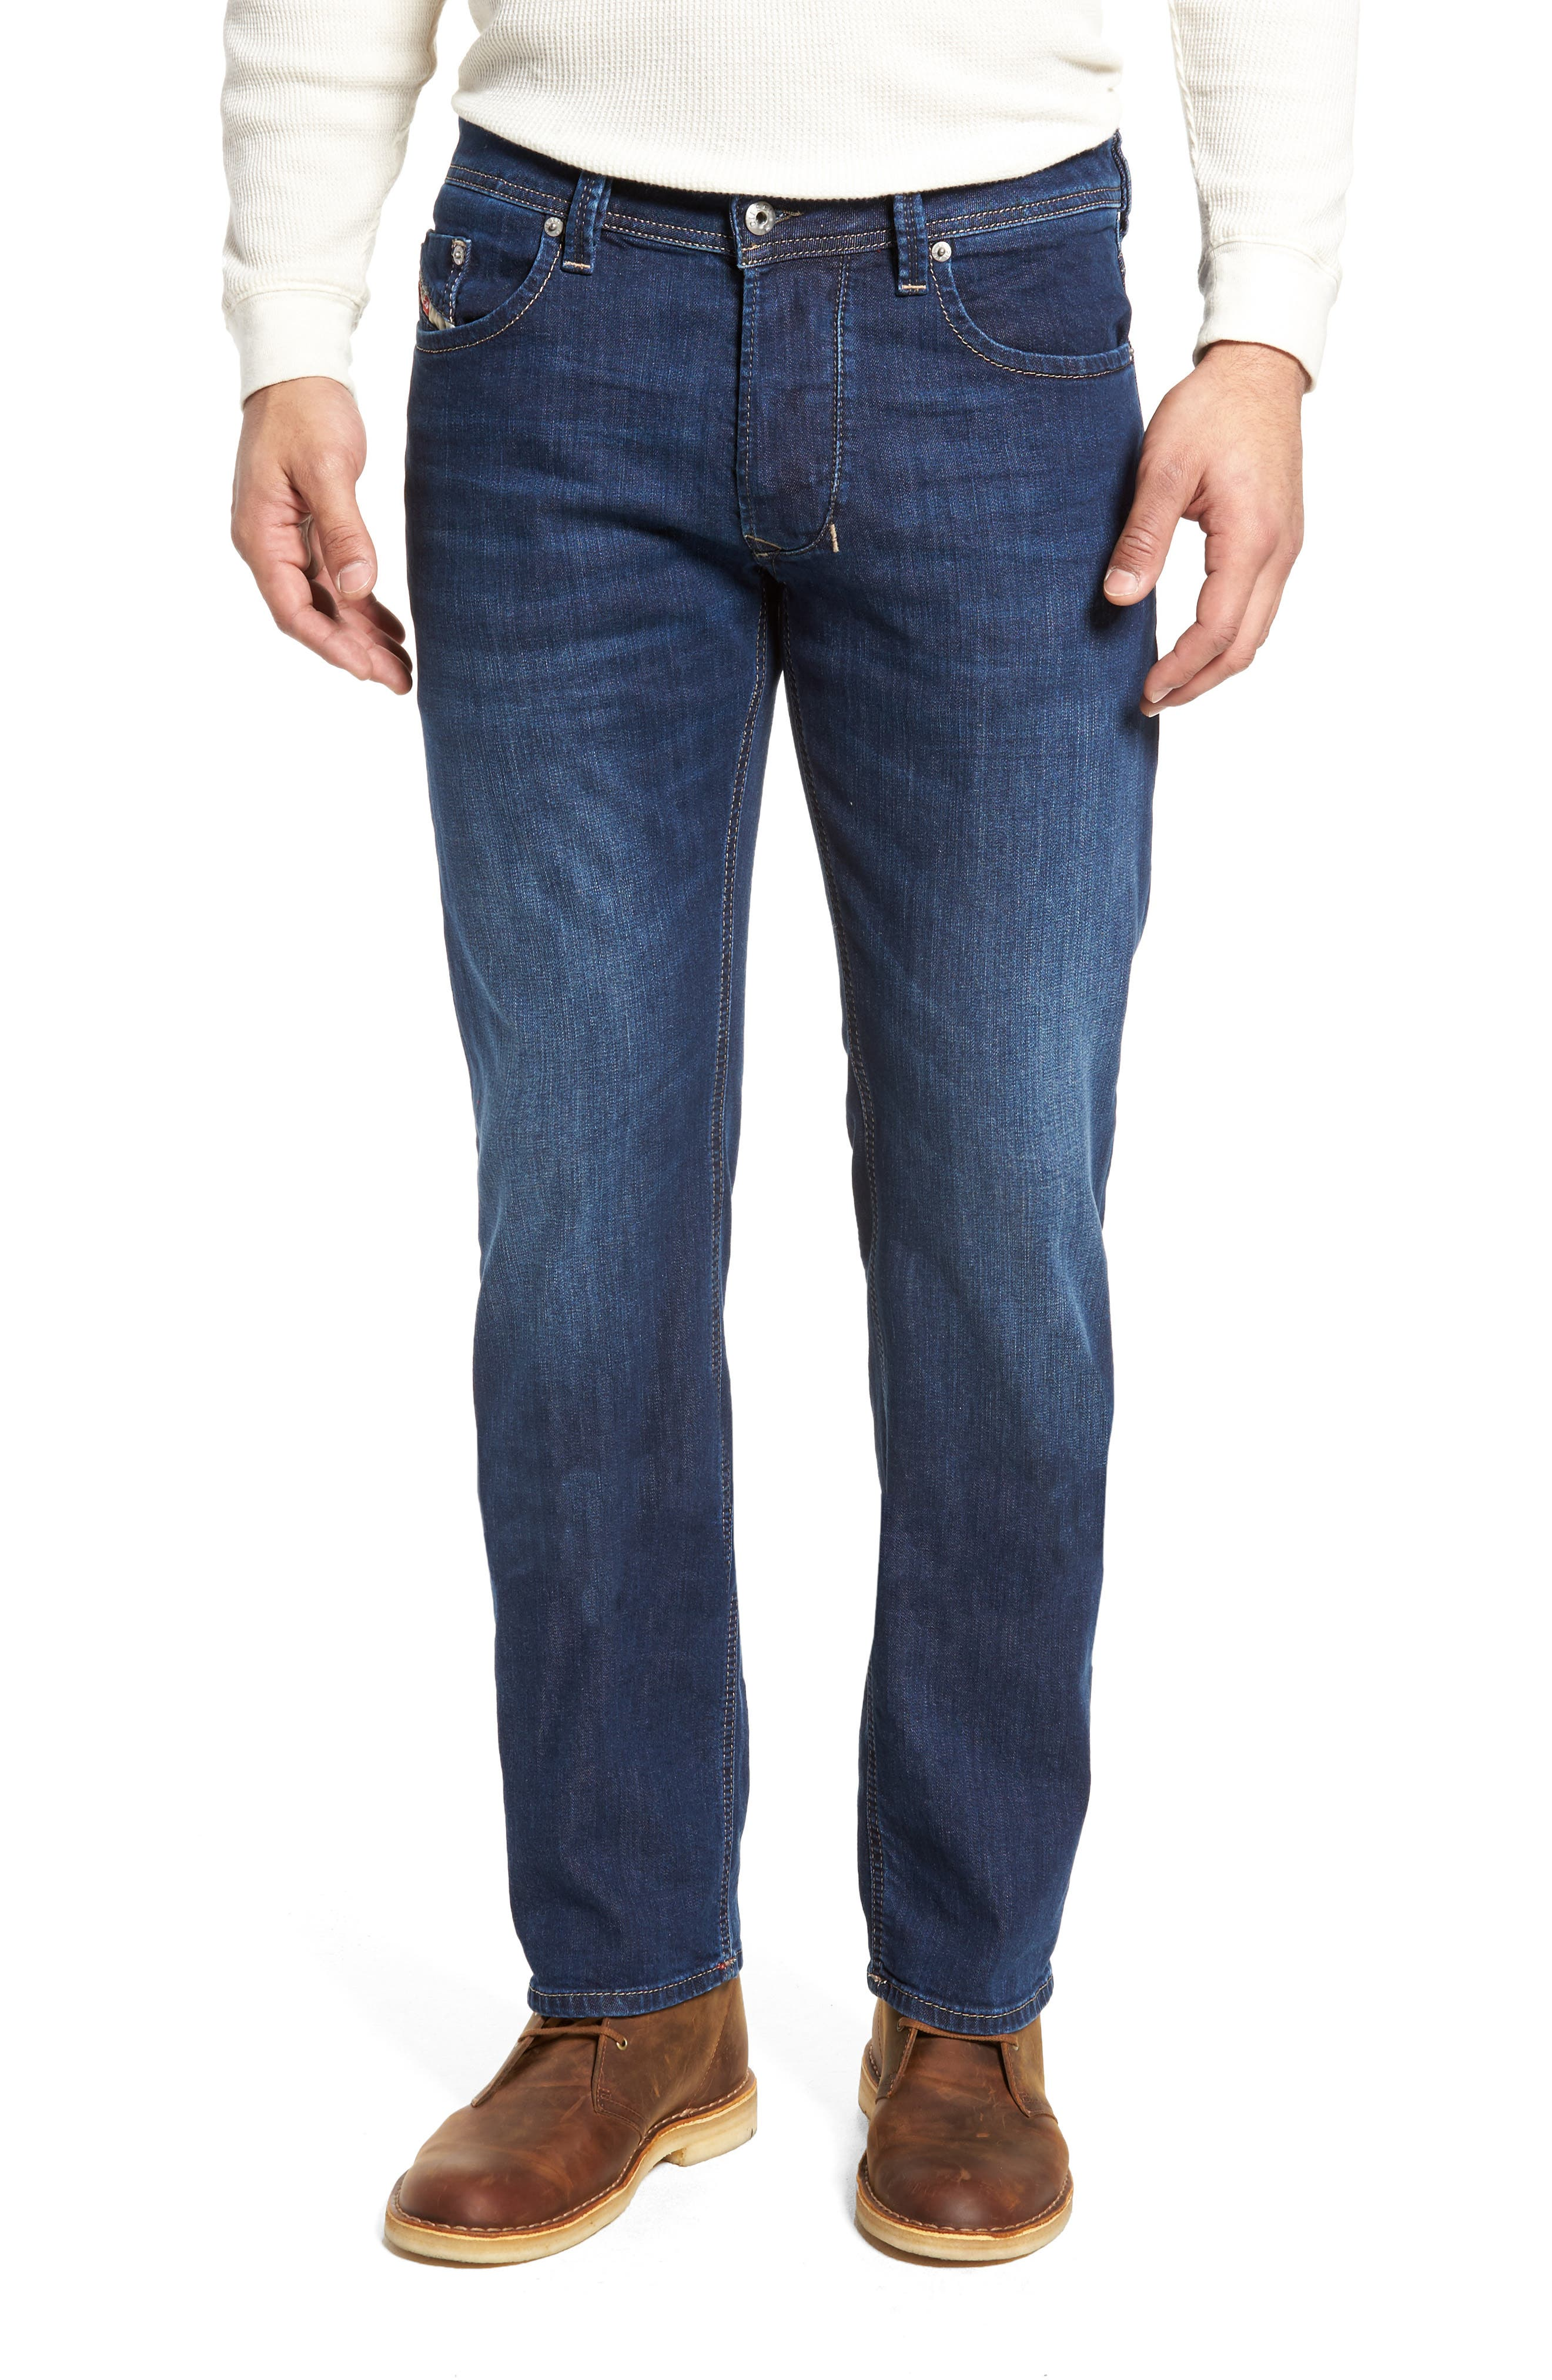 Larkee Relaxed Fit Jeans,                         Main,                         color, Denim